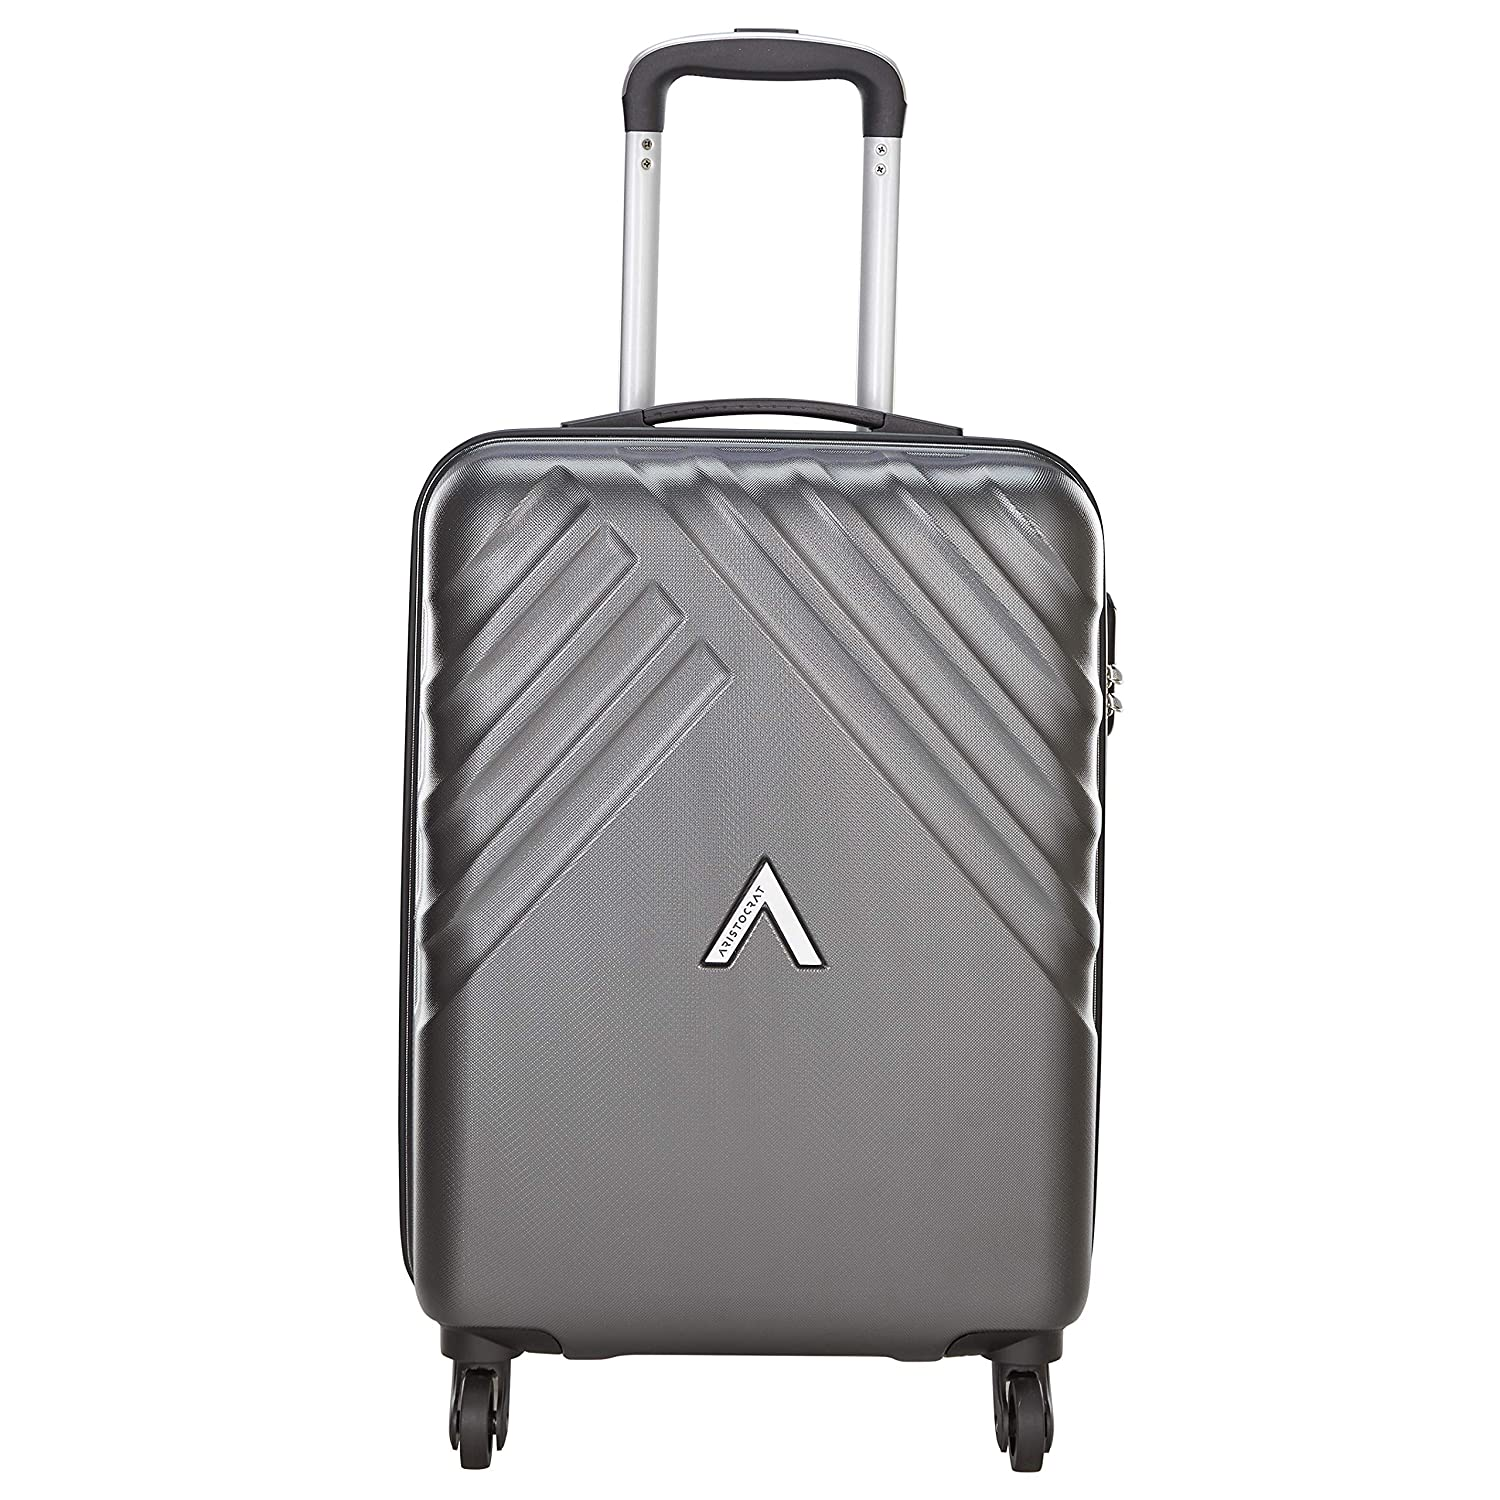 [Apply RS 100 off coupon] Aristocrat Polycarbonate 55 cms Grey Hardsided Cabin Luggage (Sienna)